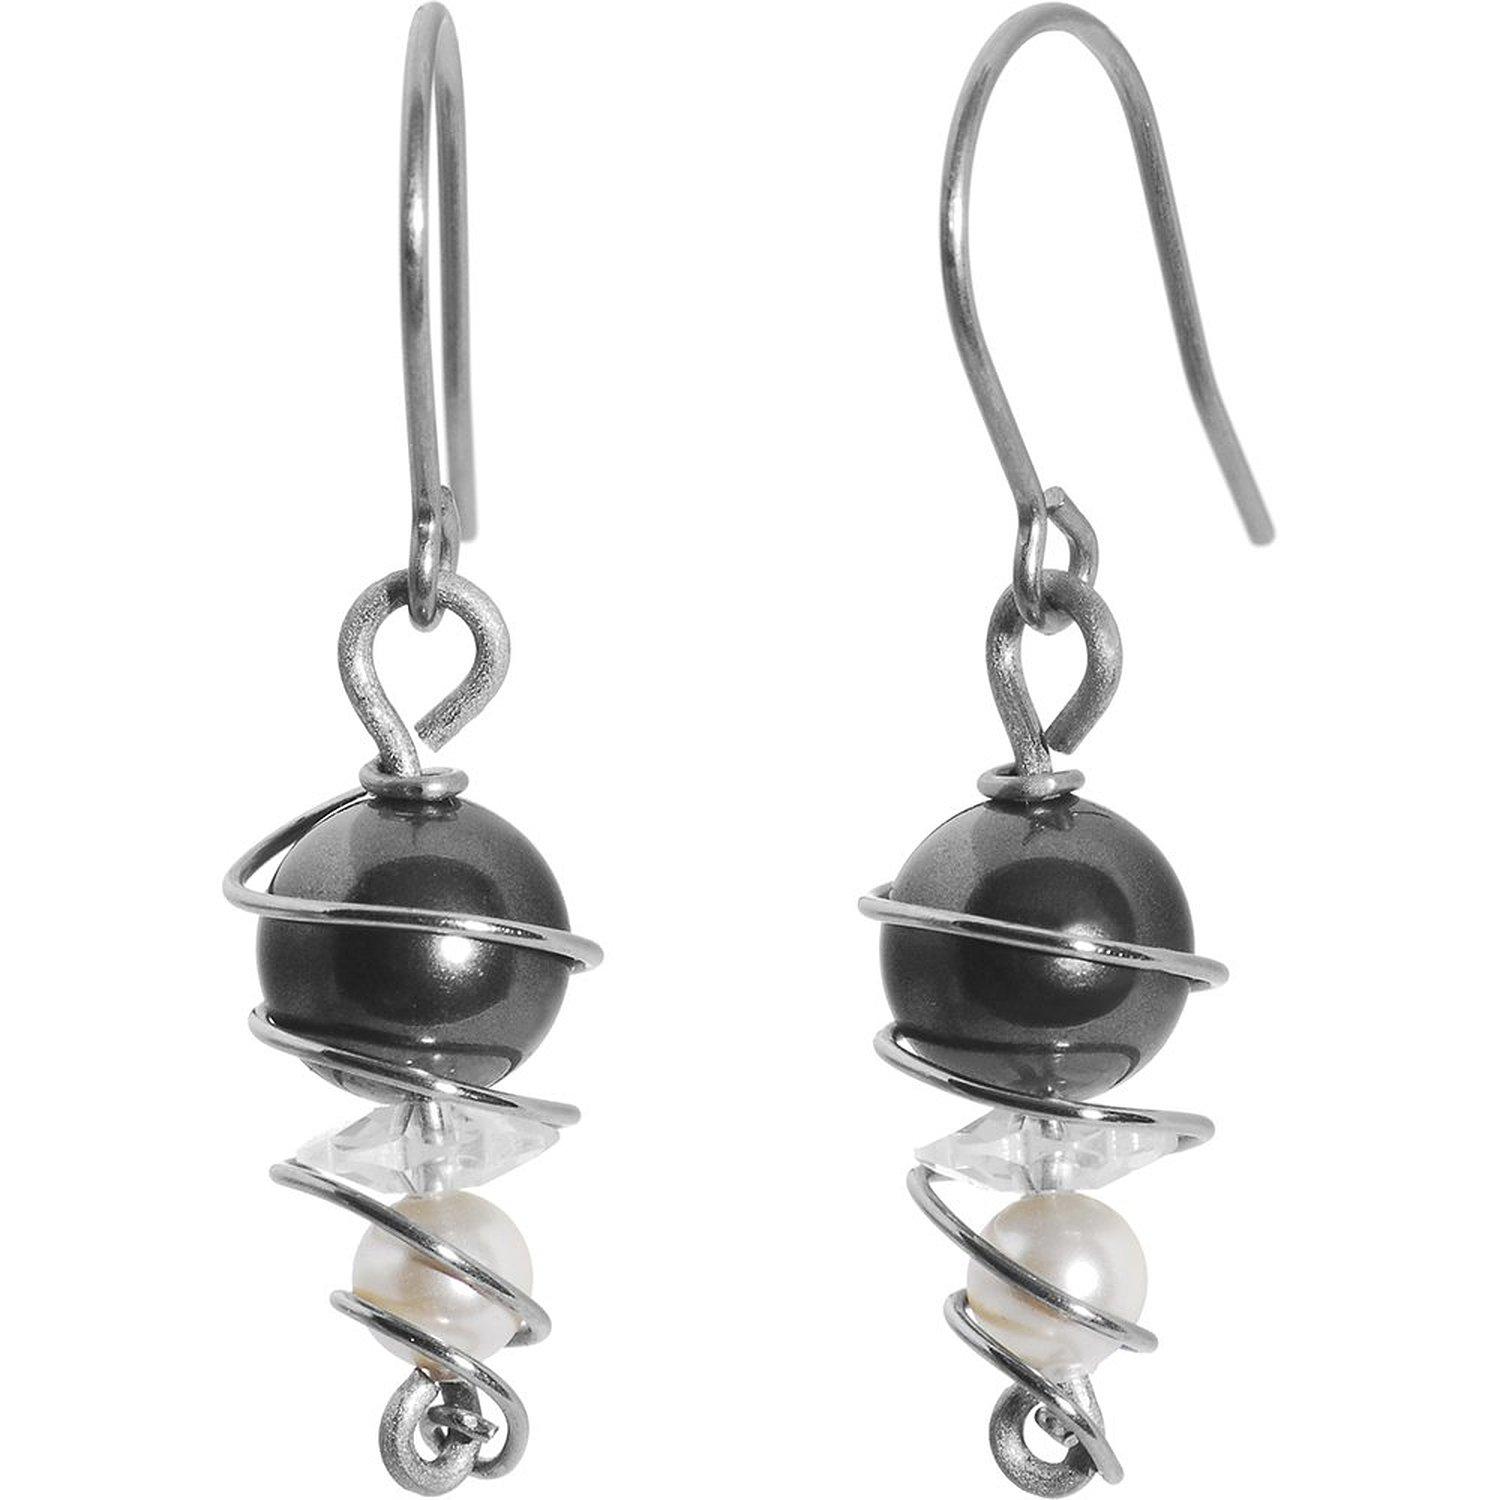 product us earwires silver fluorite is handmade they chip nice drop sterling info lyns earrings these ss their by including about length overall jewelry are